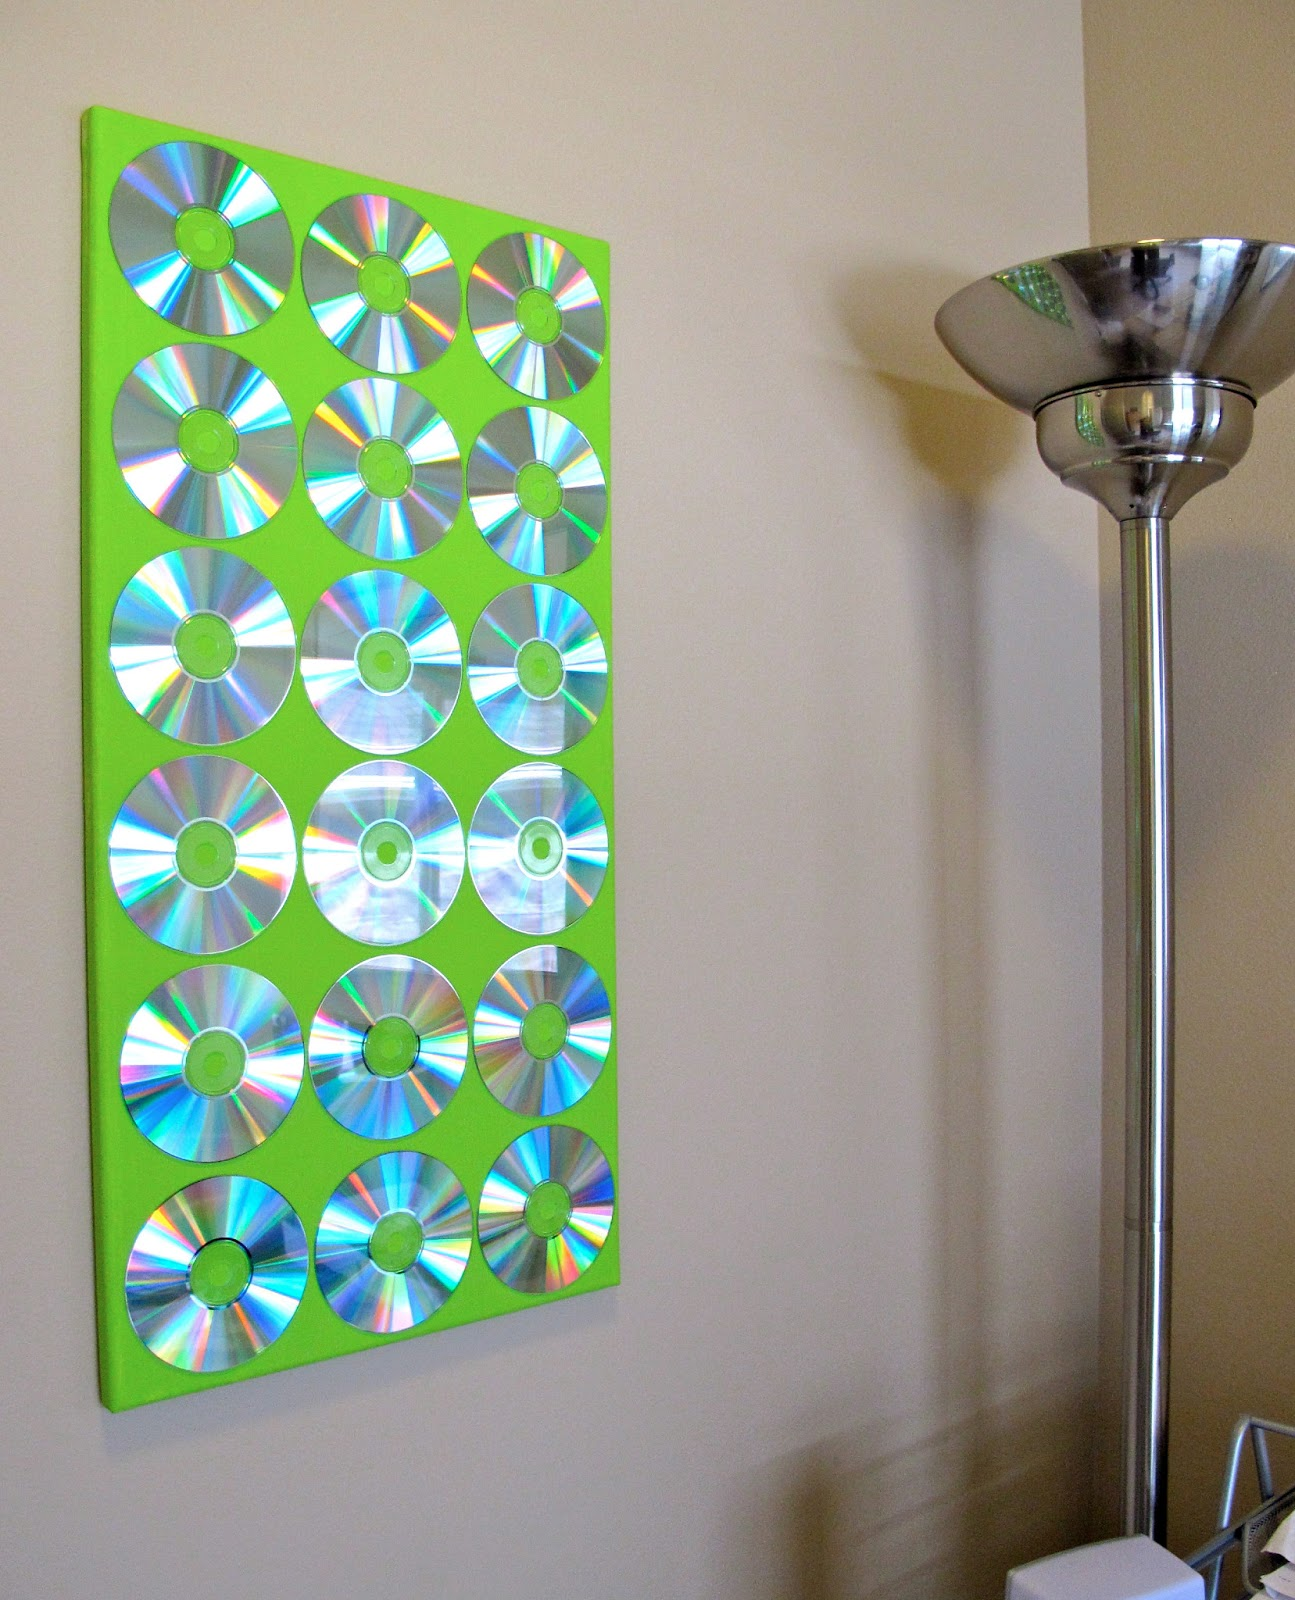 Upcycling, An Exciting And New Art Movement  |Upcycled Art